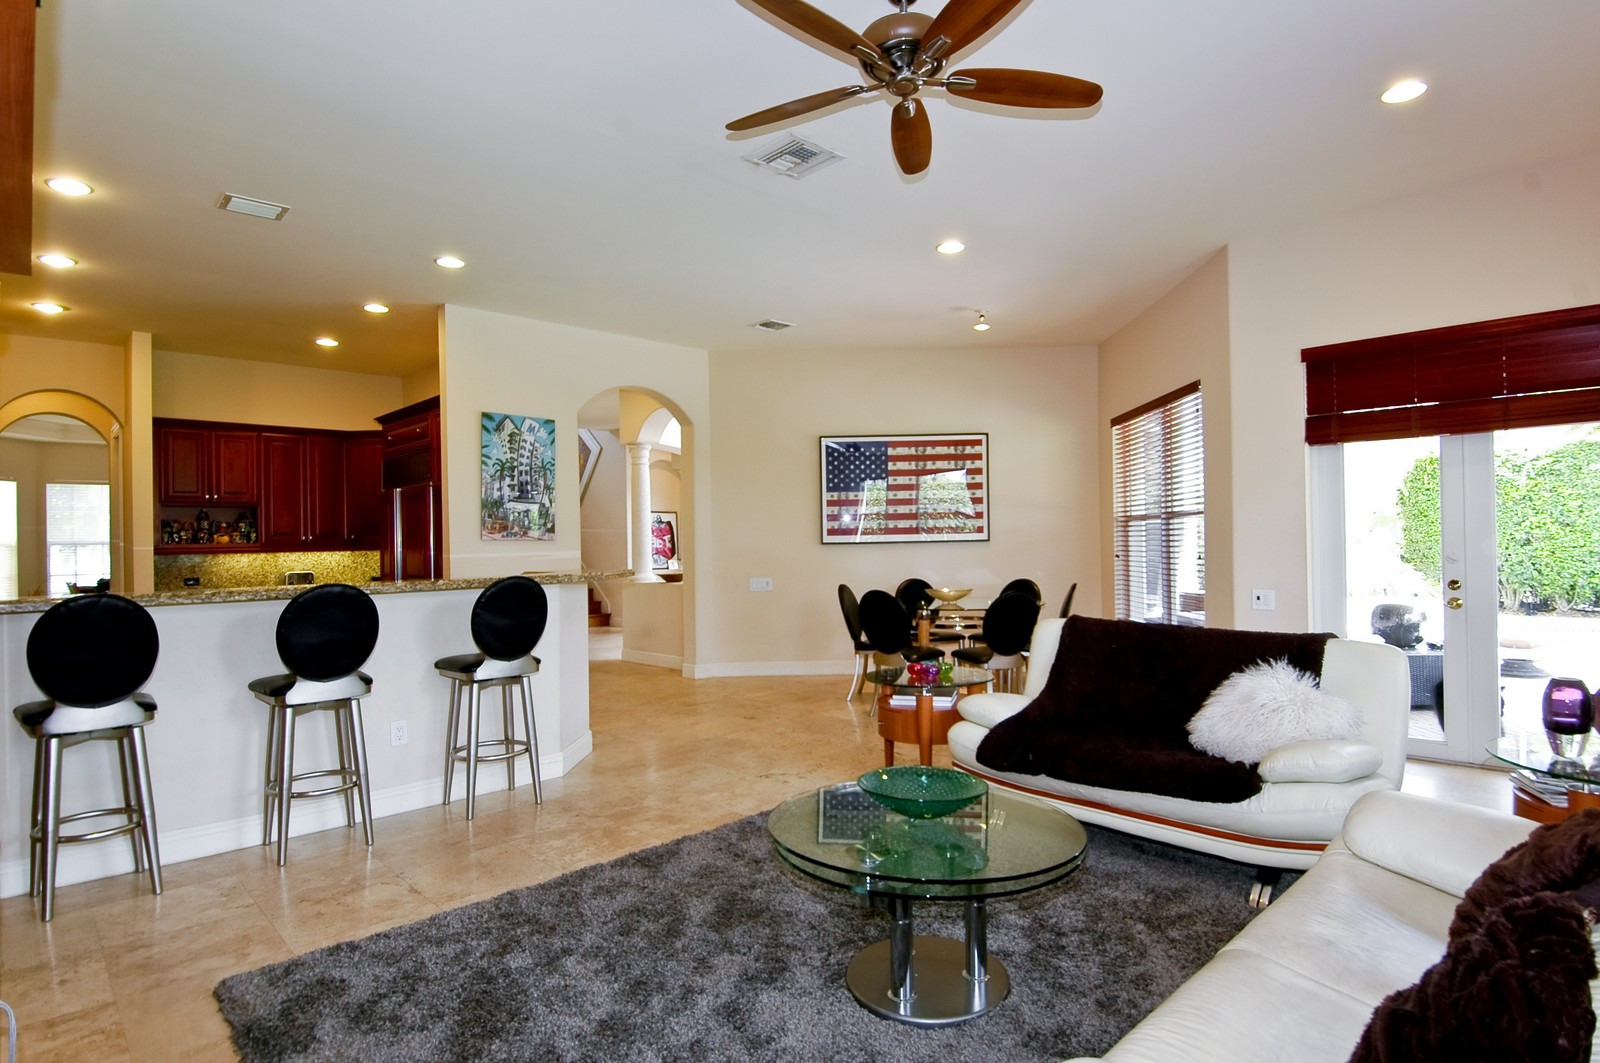 Real Estate Photography - 1260 Hatteras Ln, Hollywood, FL, 33019 - Living Room / Dining Room